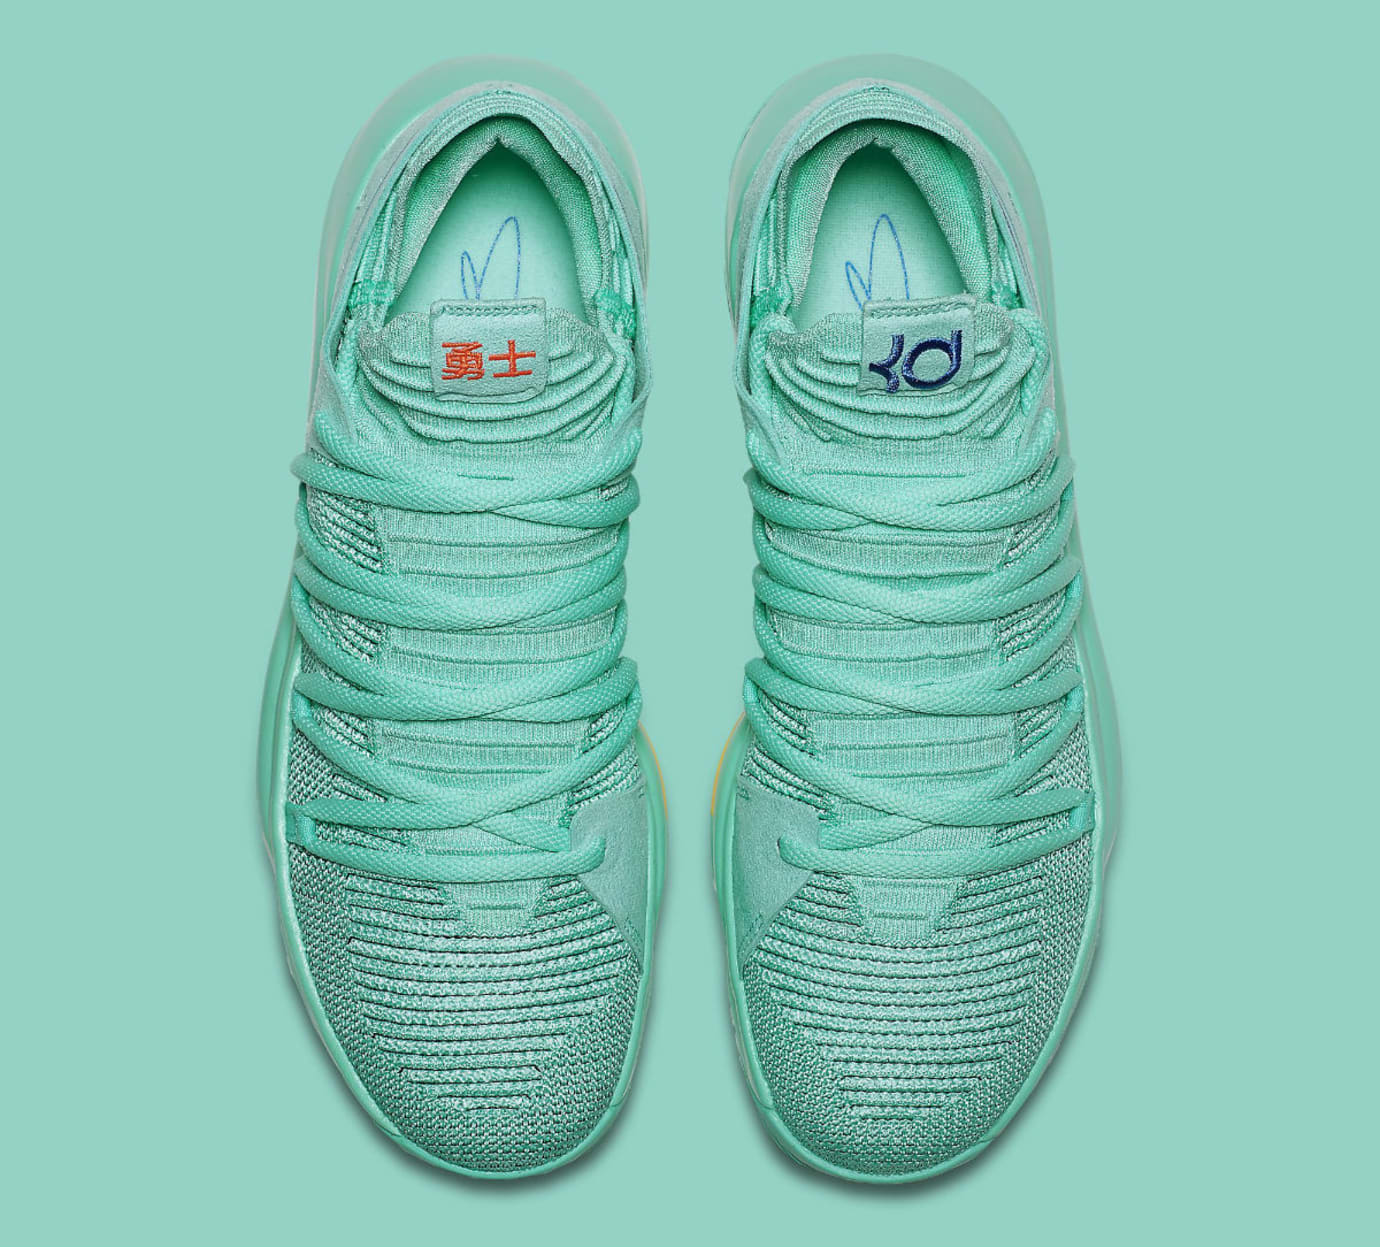 super popular c6ec5 a4d07 Nike KD 10 X City Edition Hyper Turquoise Racer Blue Release Date  897816-300 Top